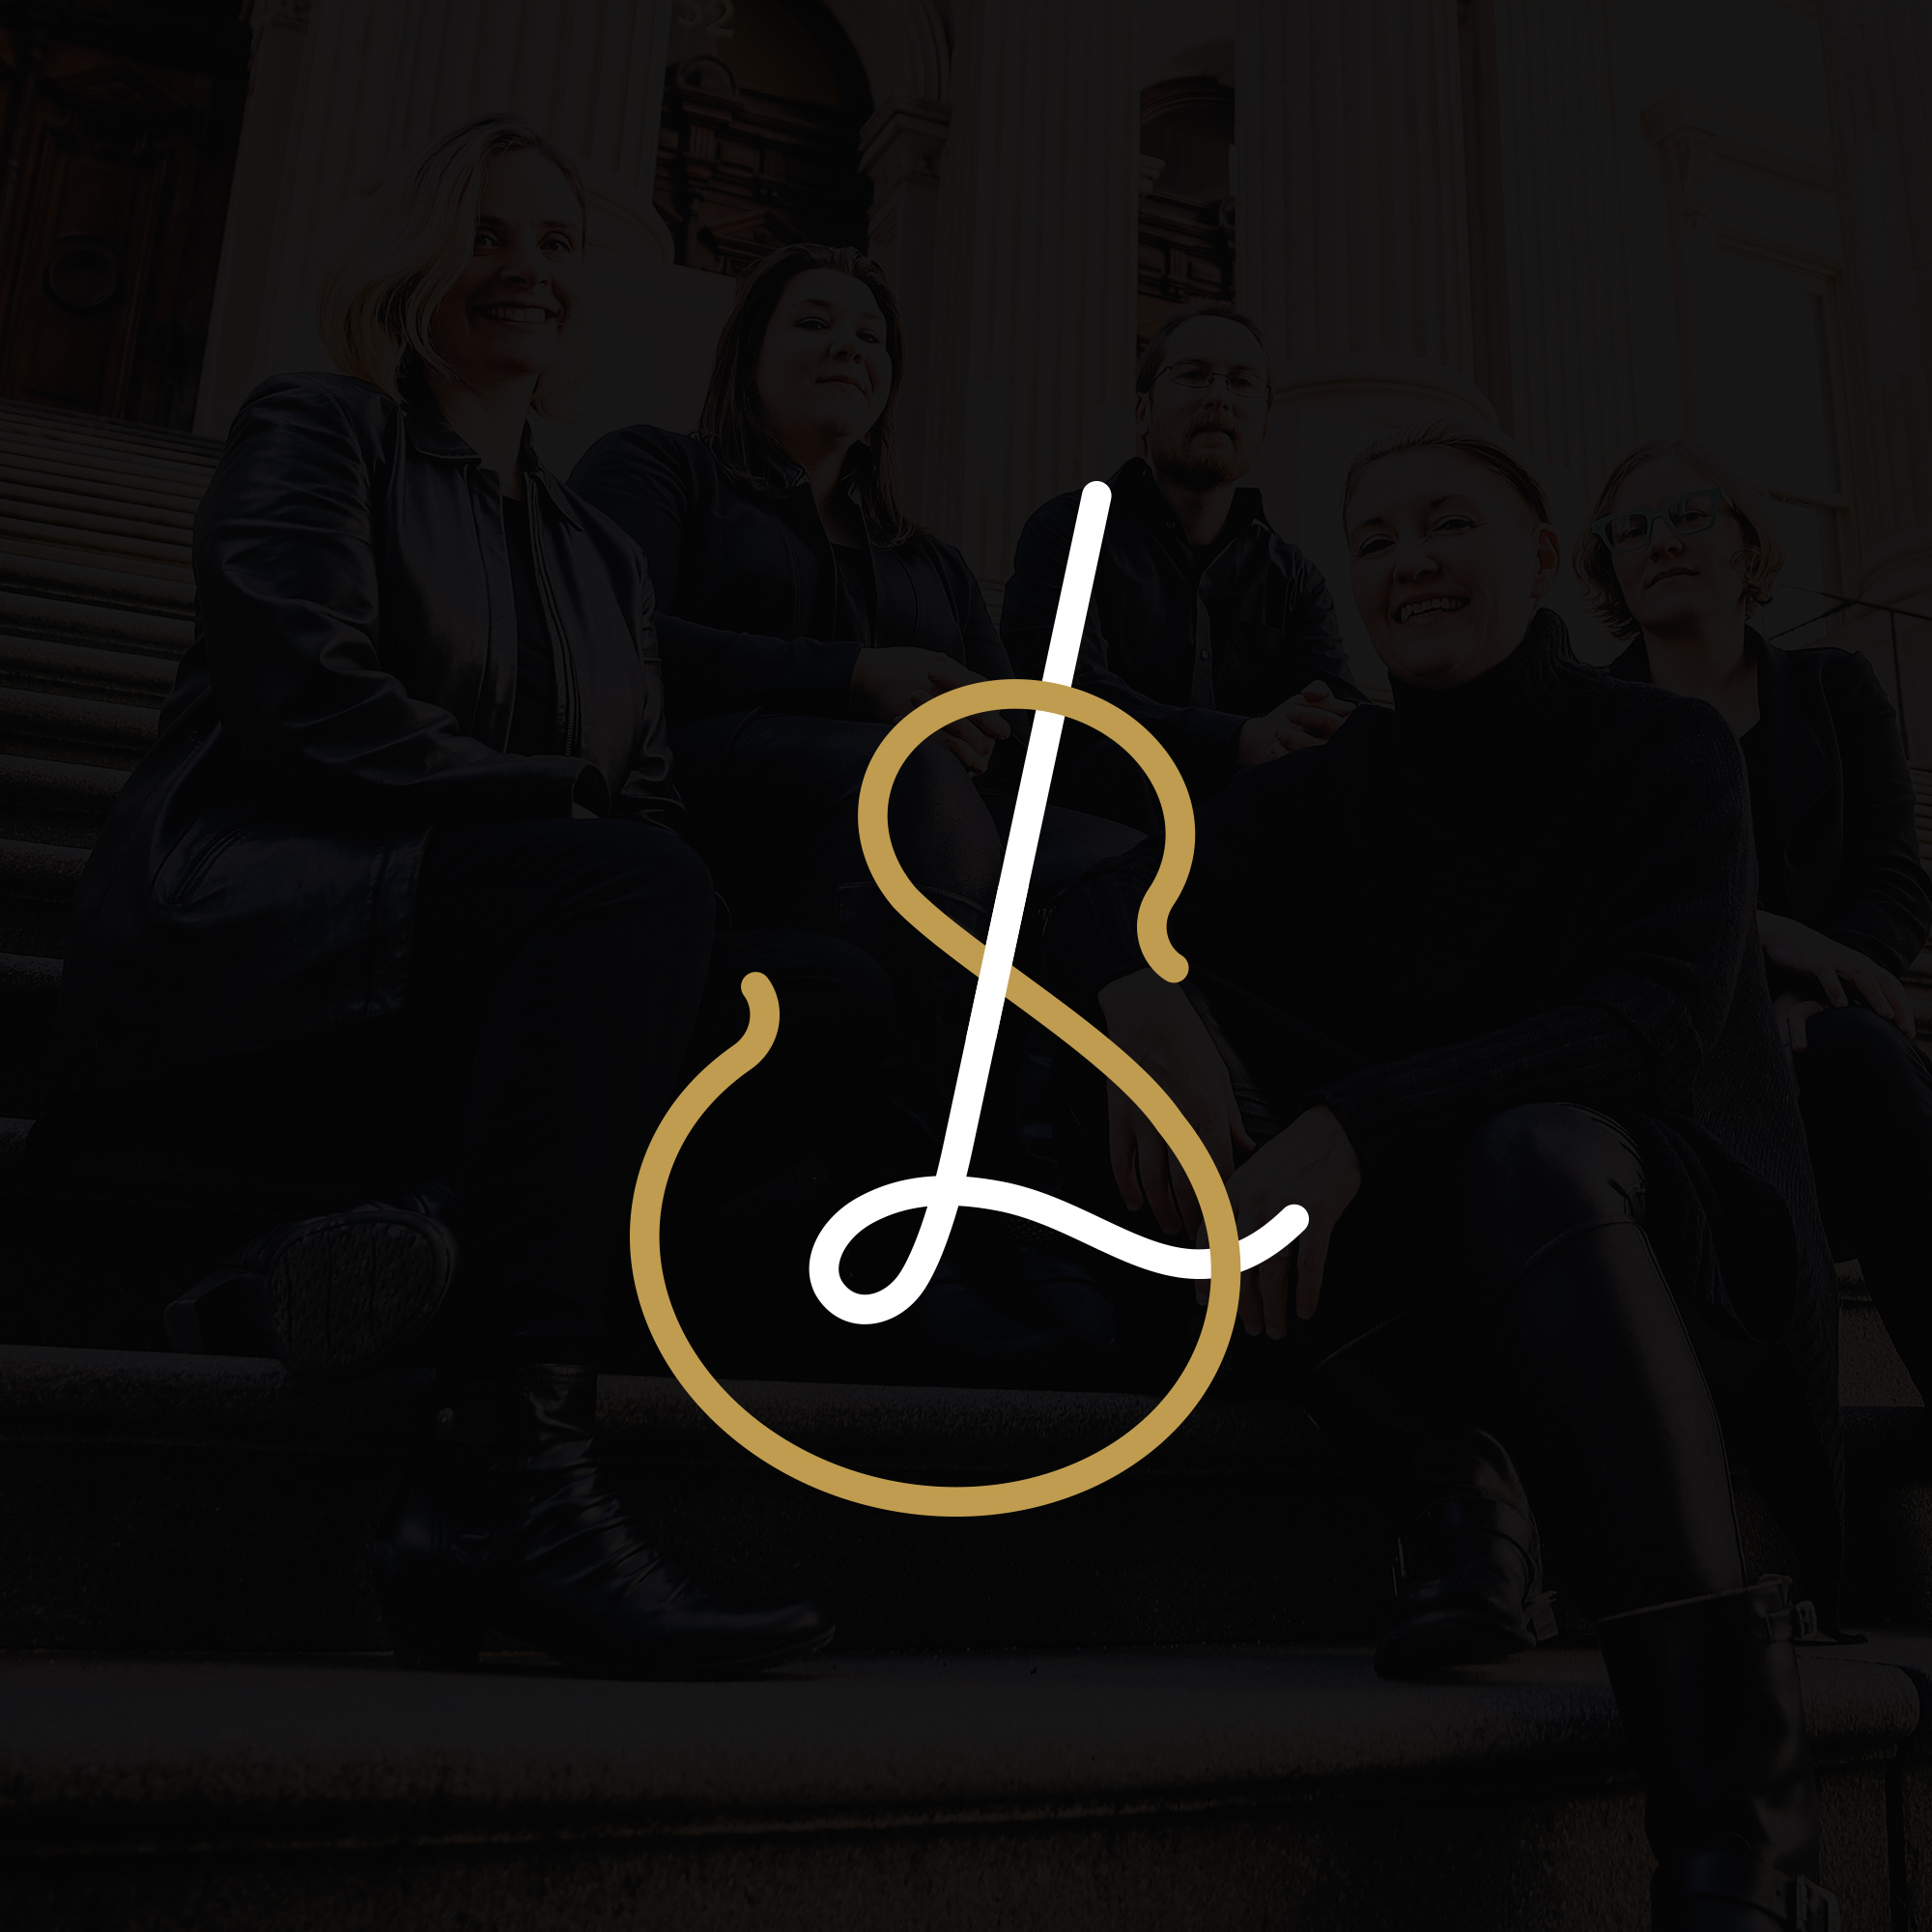 J.S. BACH - Air on the G String from Suite #3 in D MajorAndante from Brandenburg Concerto #2 in F MajorArioso from Cantata #156Gigue from Suite #3 in D MajorJesu, Joy of Man's Desiring from Cantata #147March in D Major from the Anna Magdalene Bach NotebookMy Heart Ever Faithful Ara from Cantata #68Rondeau from Orchestral Suite #2 in B MinorSheep May Safely Graze from Cantata #208